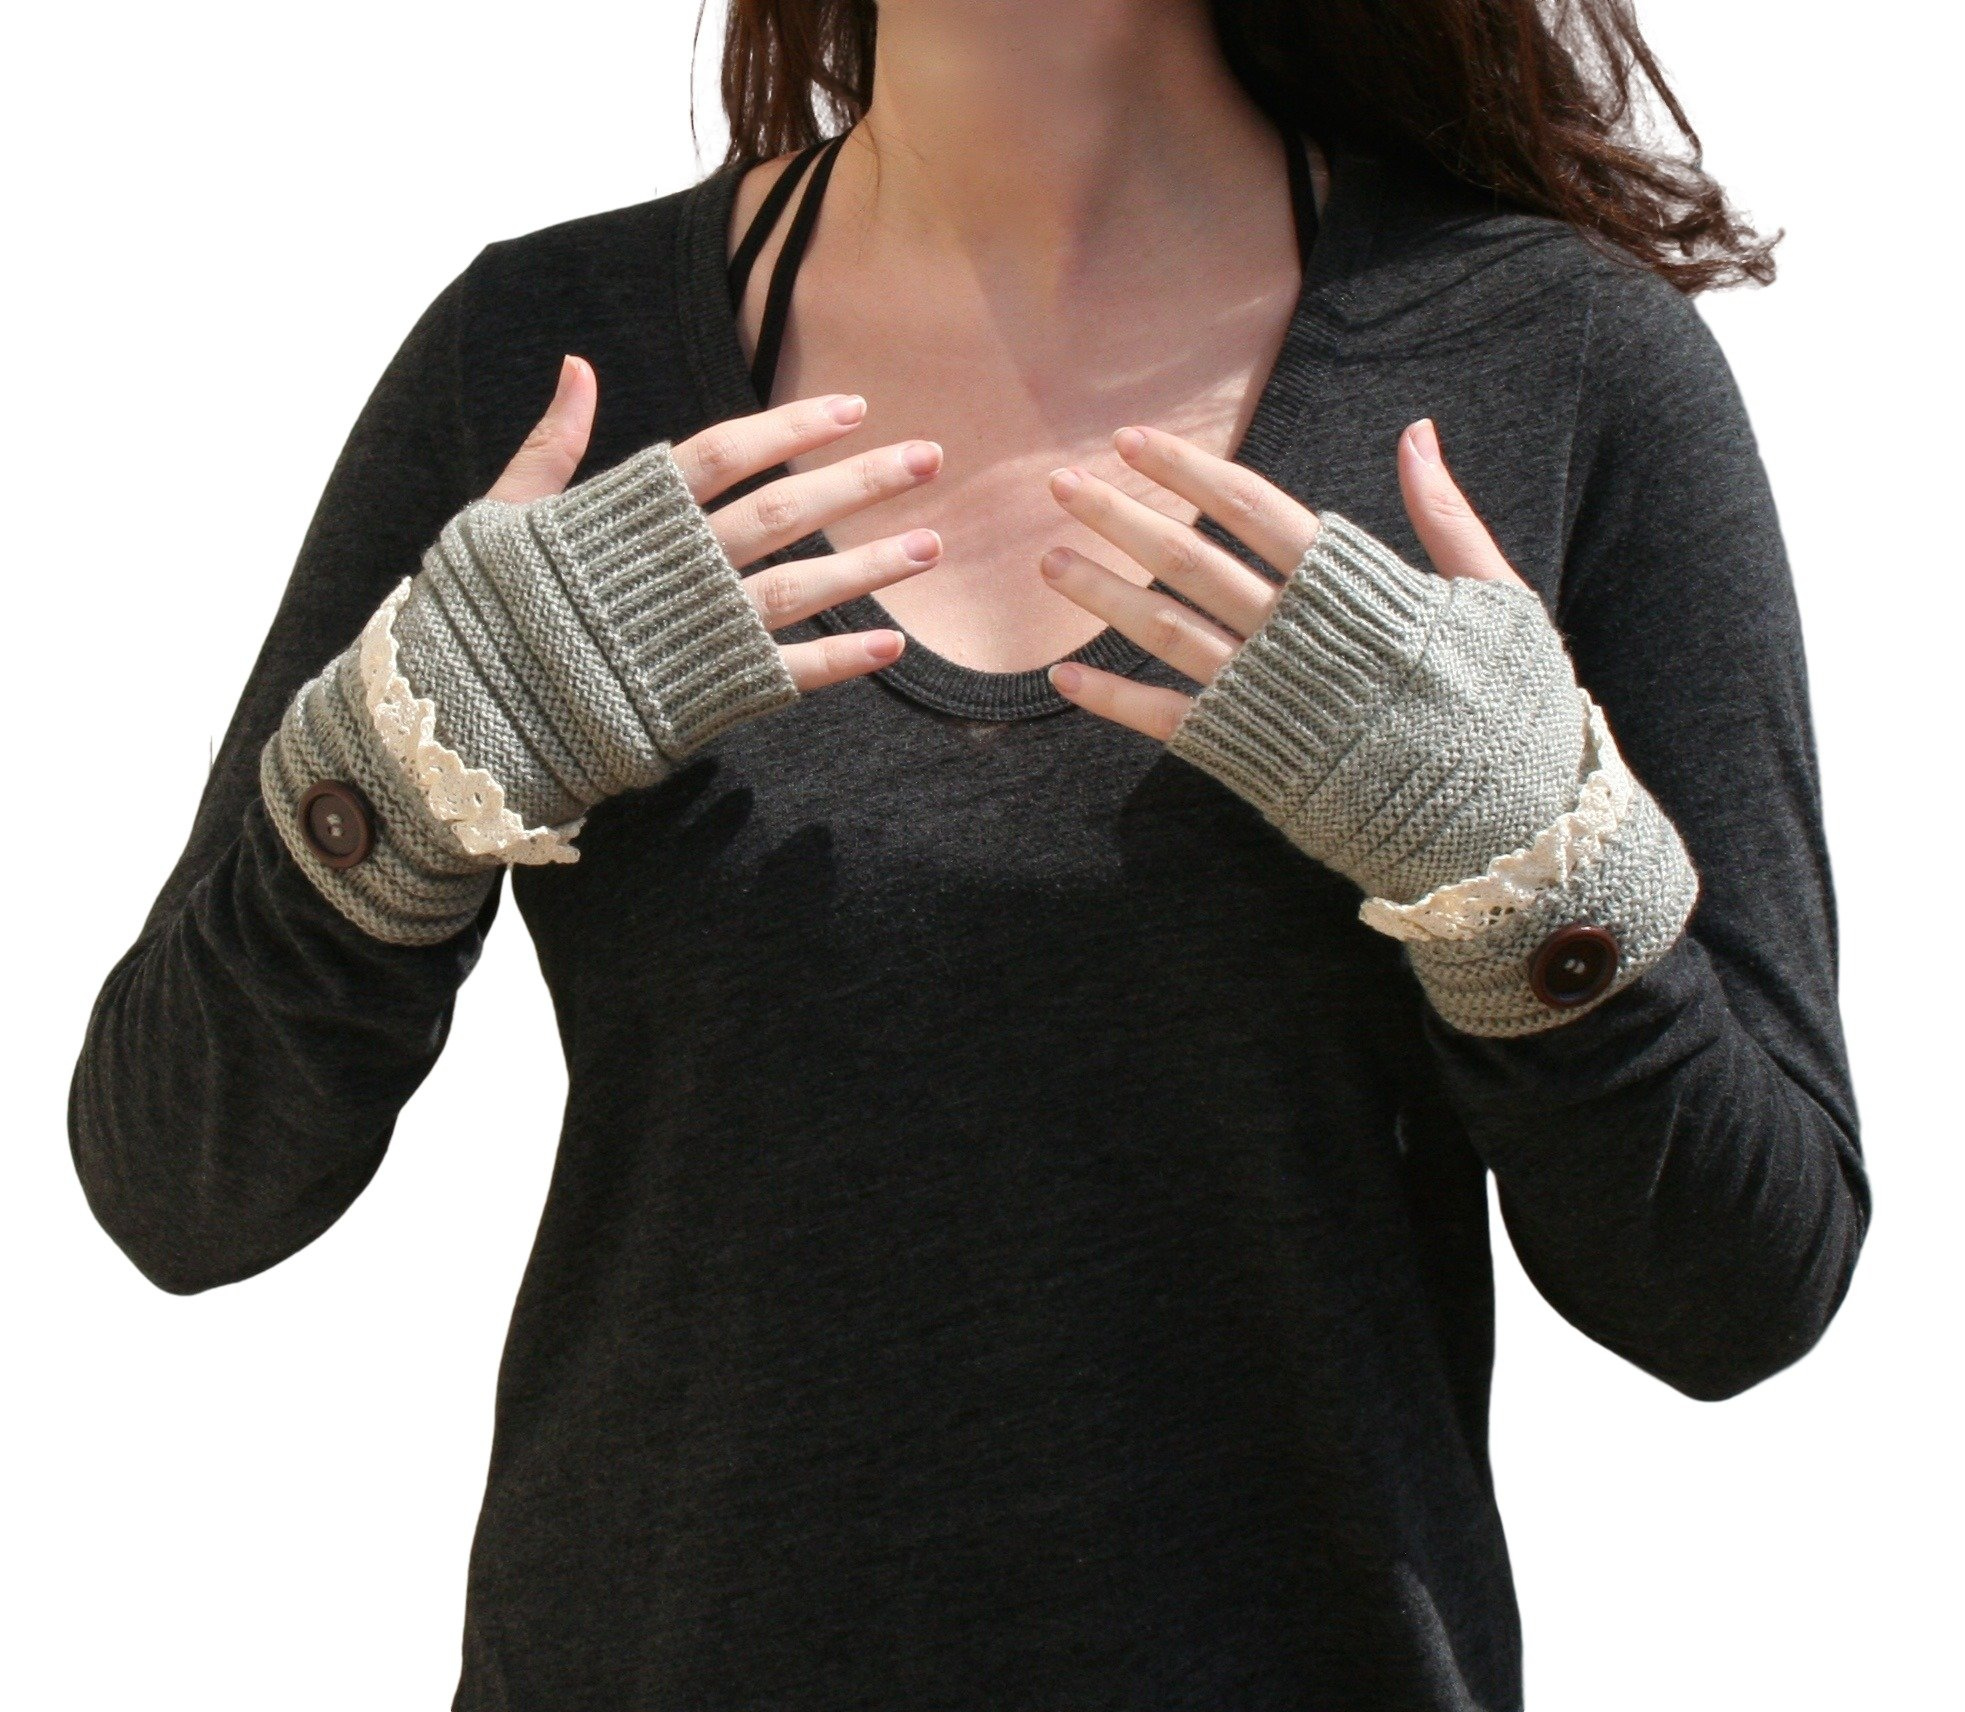 Blue 55 Cute Cozy Fingerless Thumbhole Knit Lace Hand Warmer Glove Mittens and boot cuffs Legwarmers Steel Grey One Size Item by Blue 55